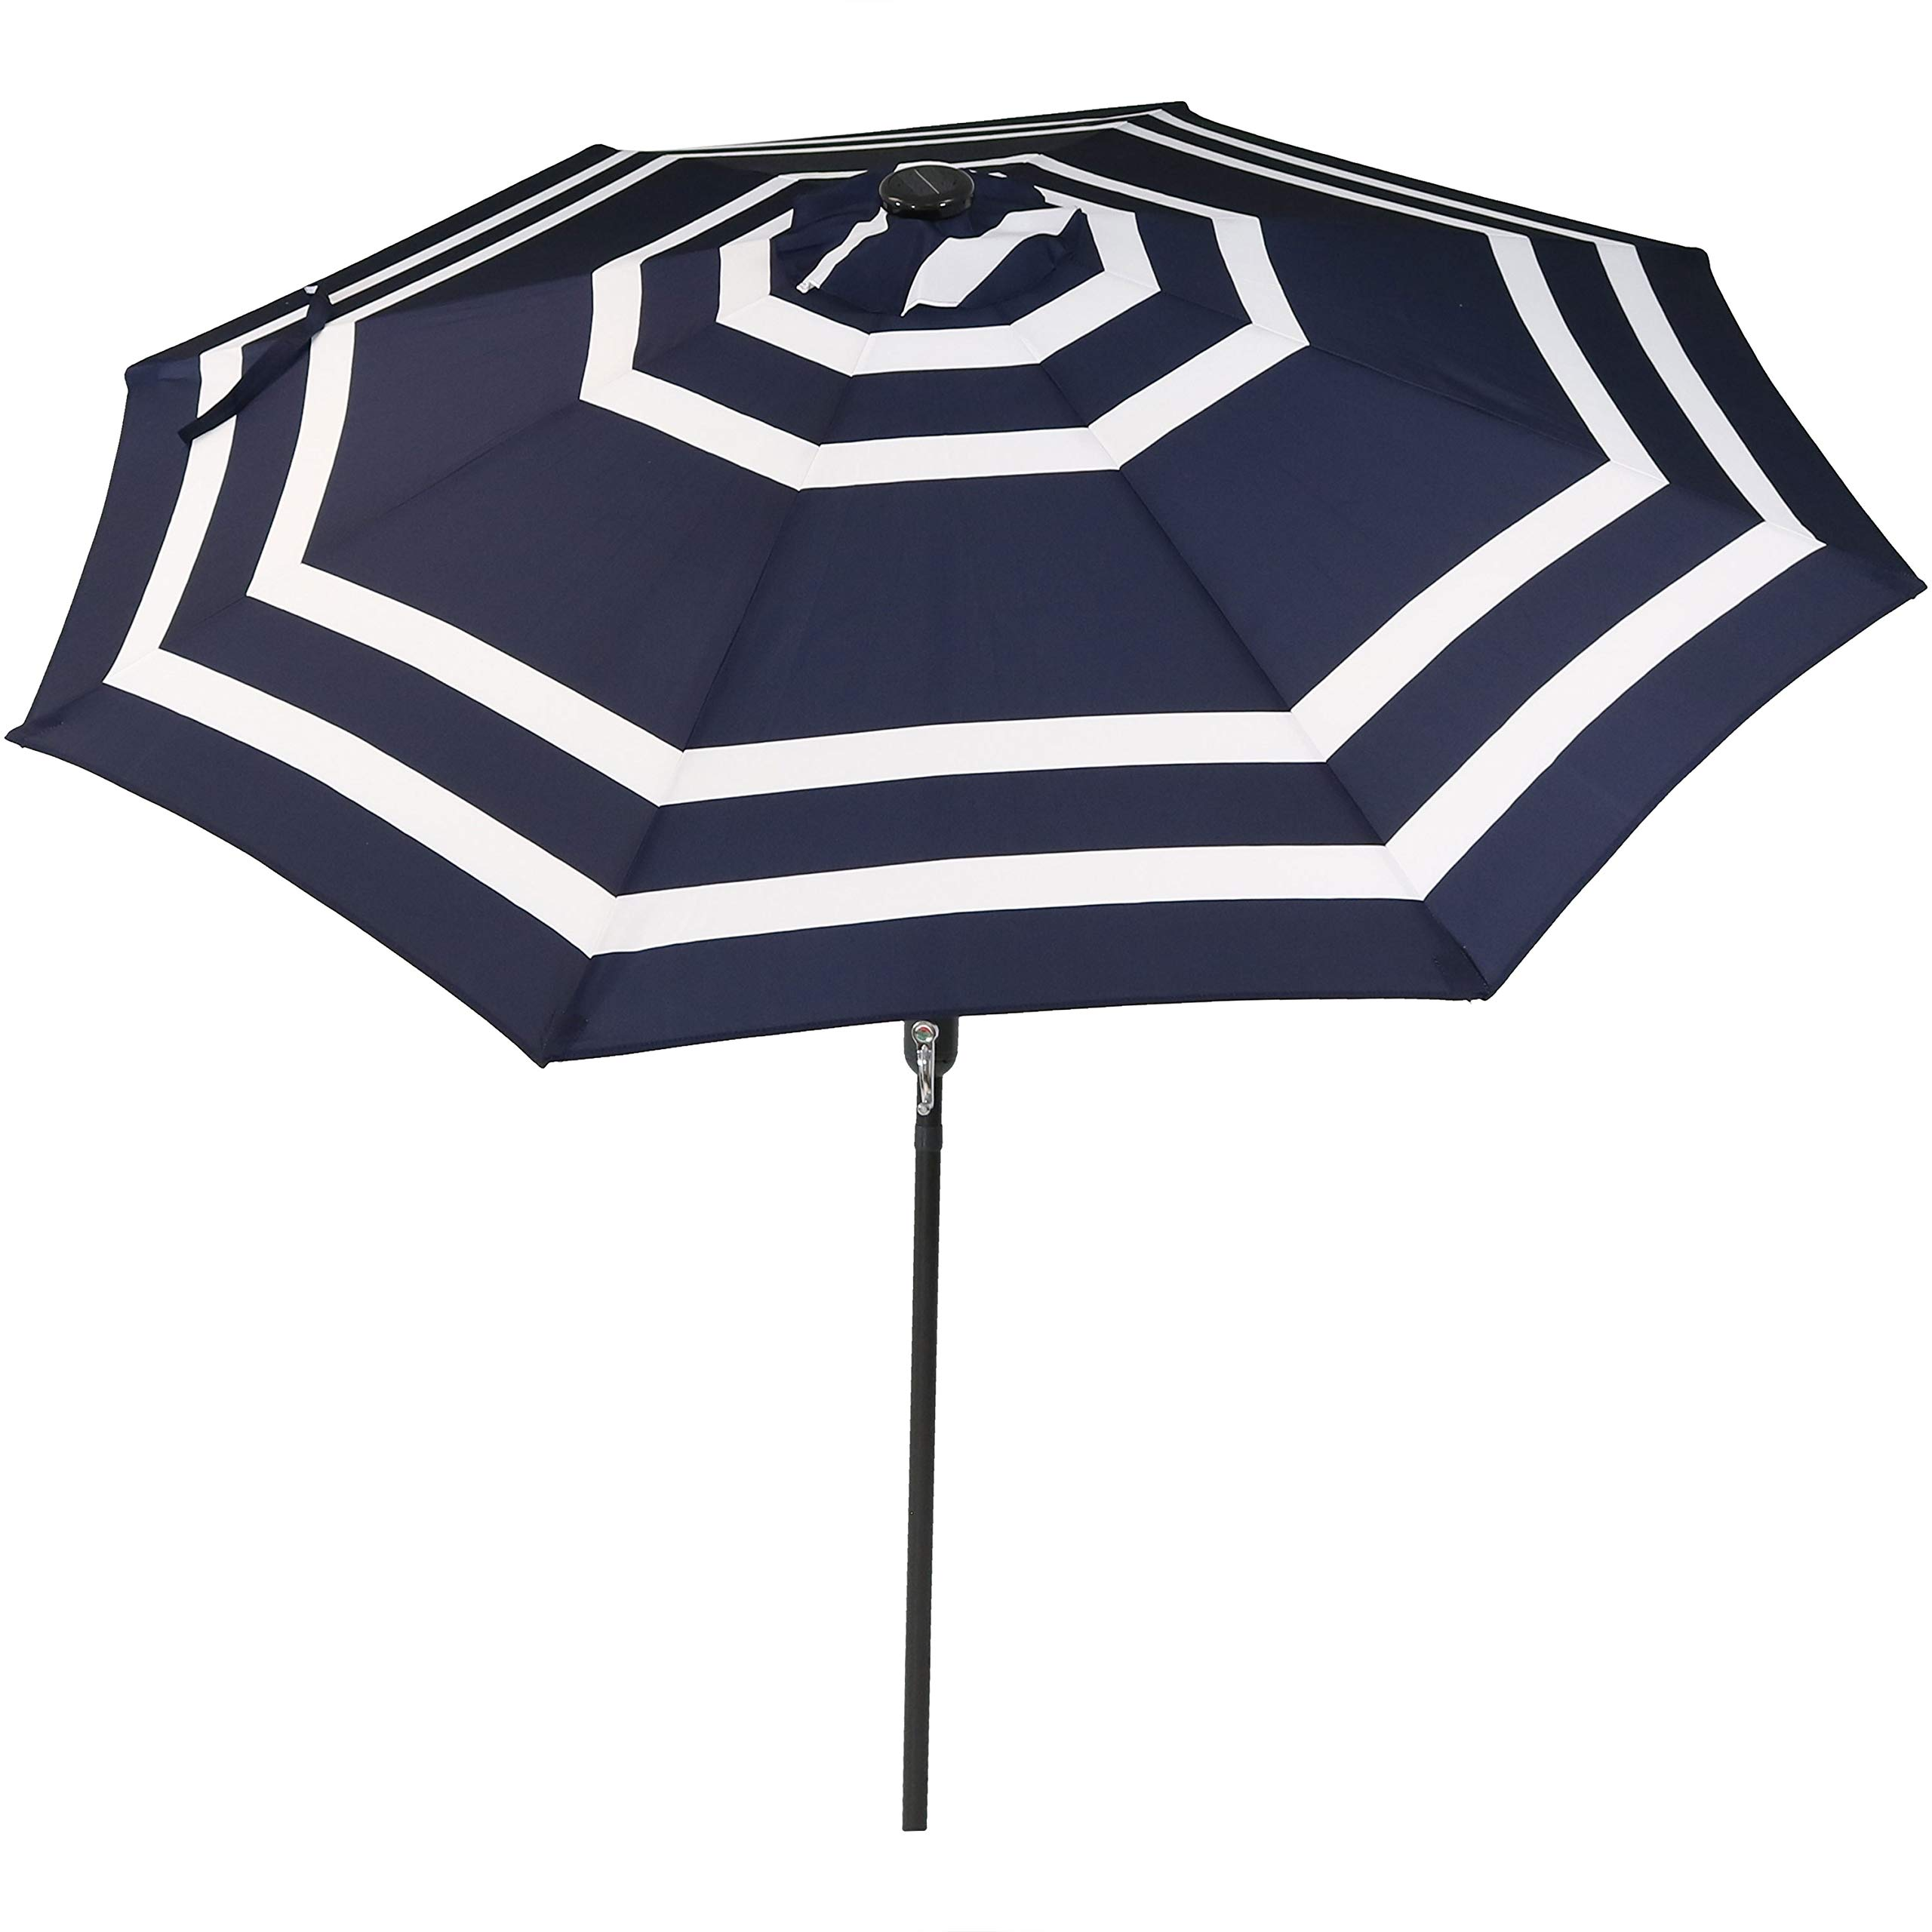 Sunnydaze 9 Foot Outdoor Patio Umbrella with Solar Lights & Tilt/Crank, LED, Navy Blue Stripe